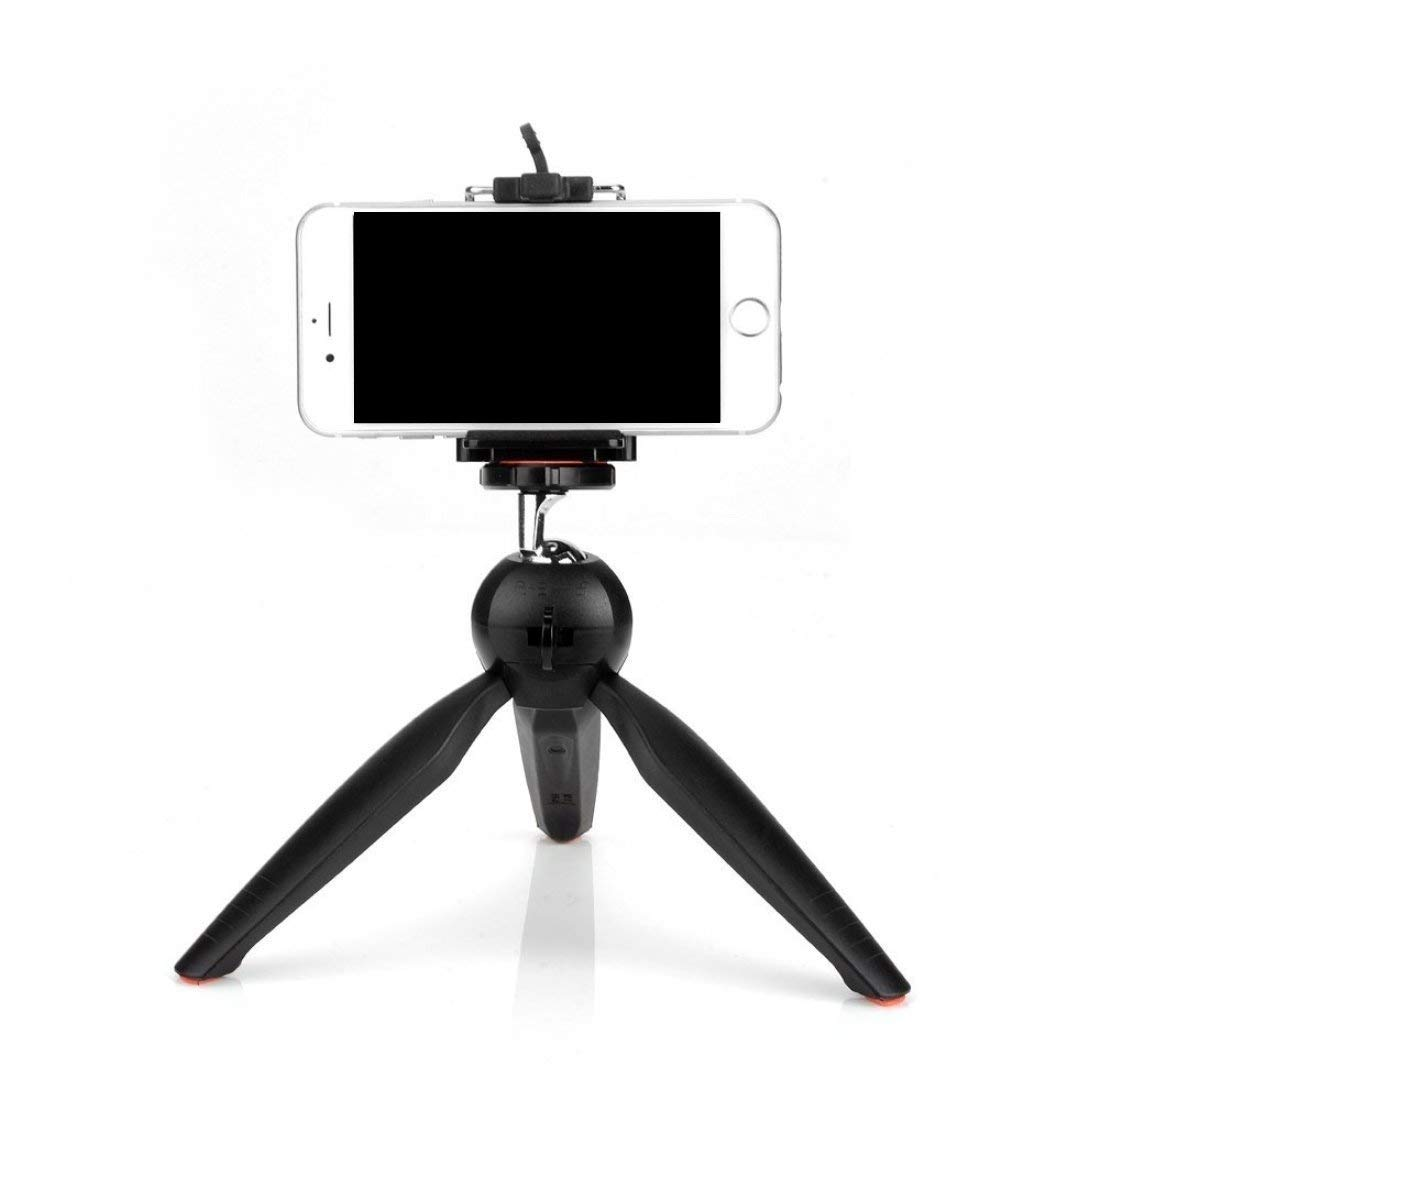 DOITSHOP YT228 Universal Mini Tripod For Digital Camera and All Mobile Phones